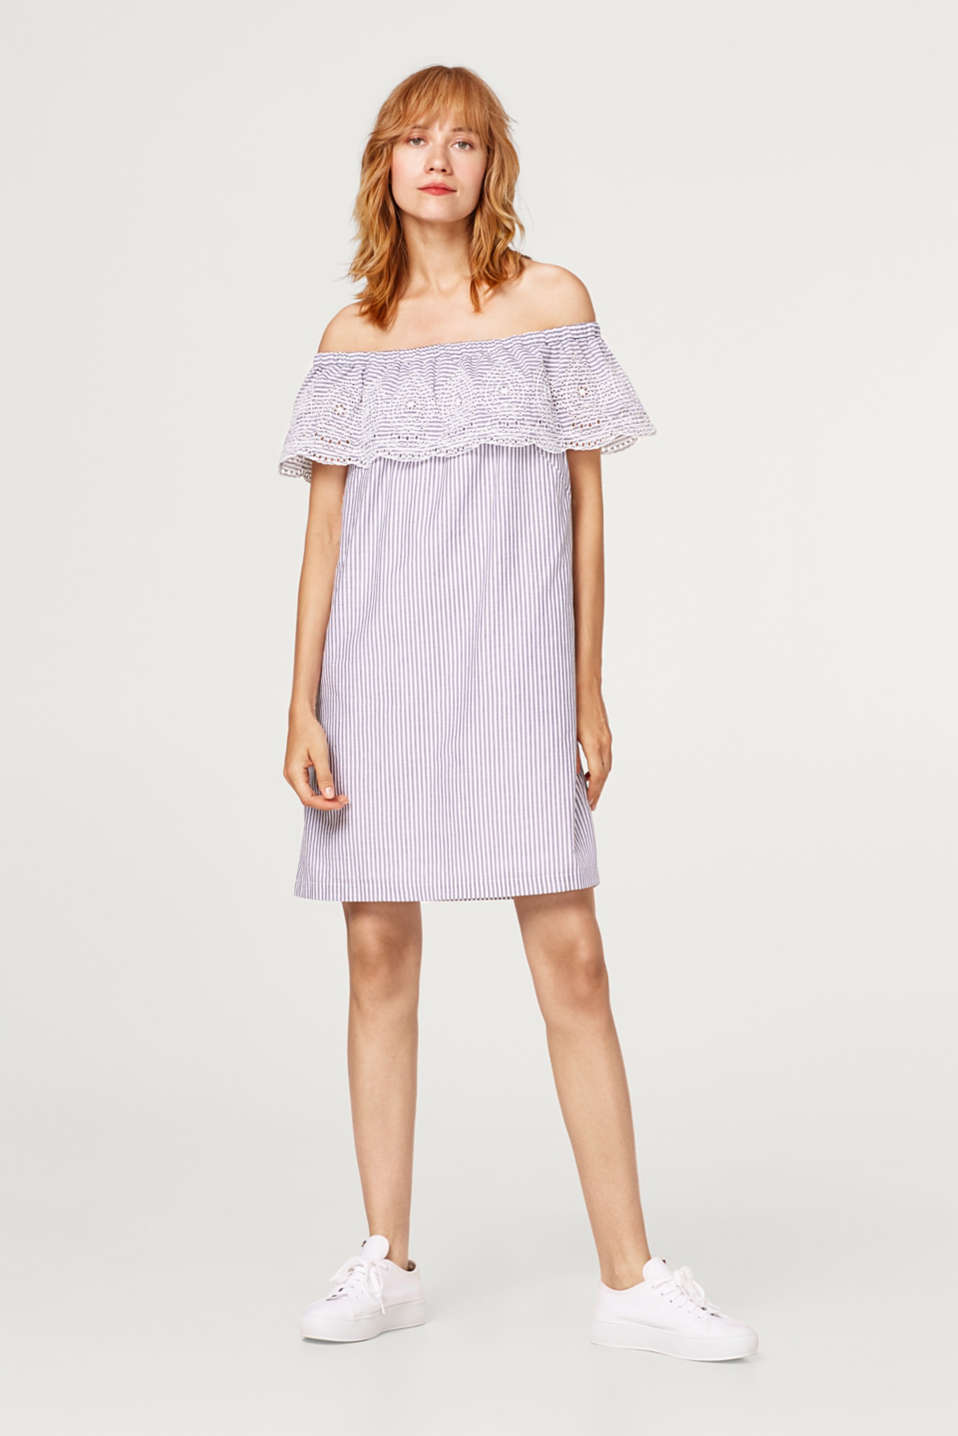 Esprit - Dress with broderie anglaise, 100% cotton